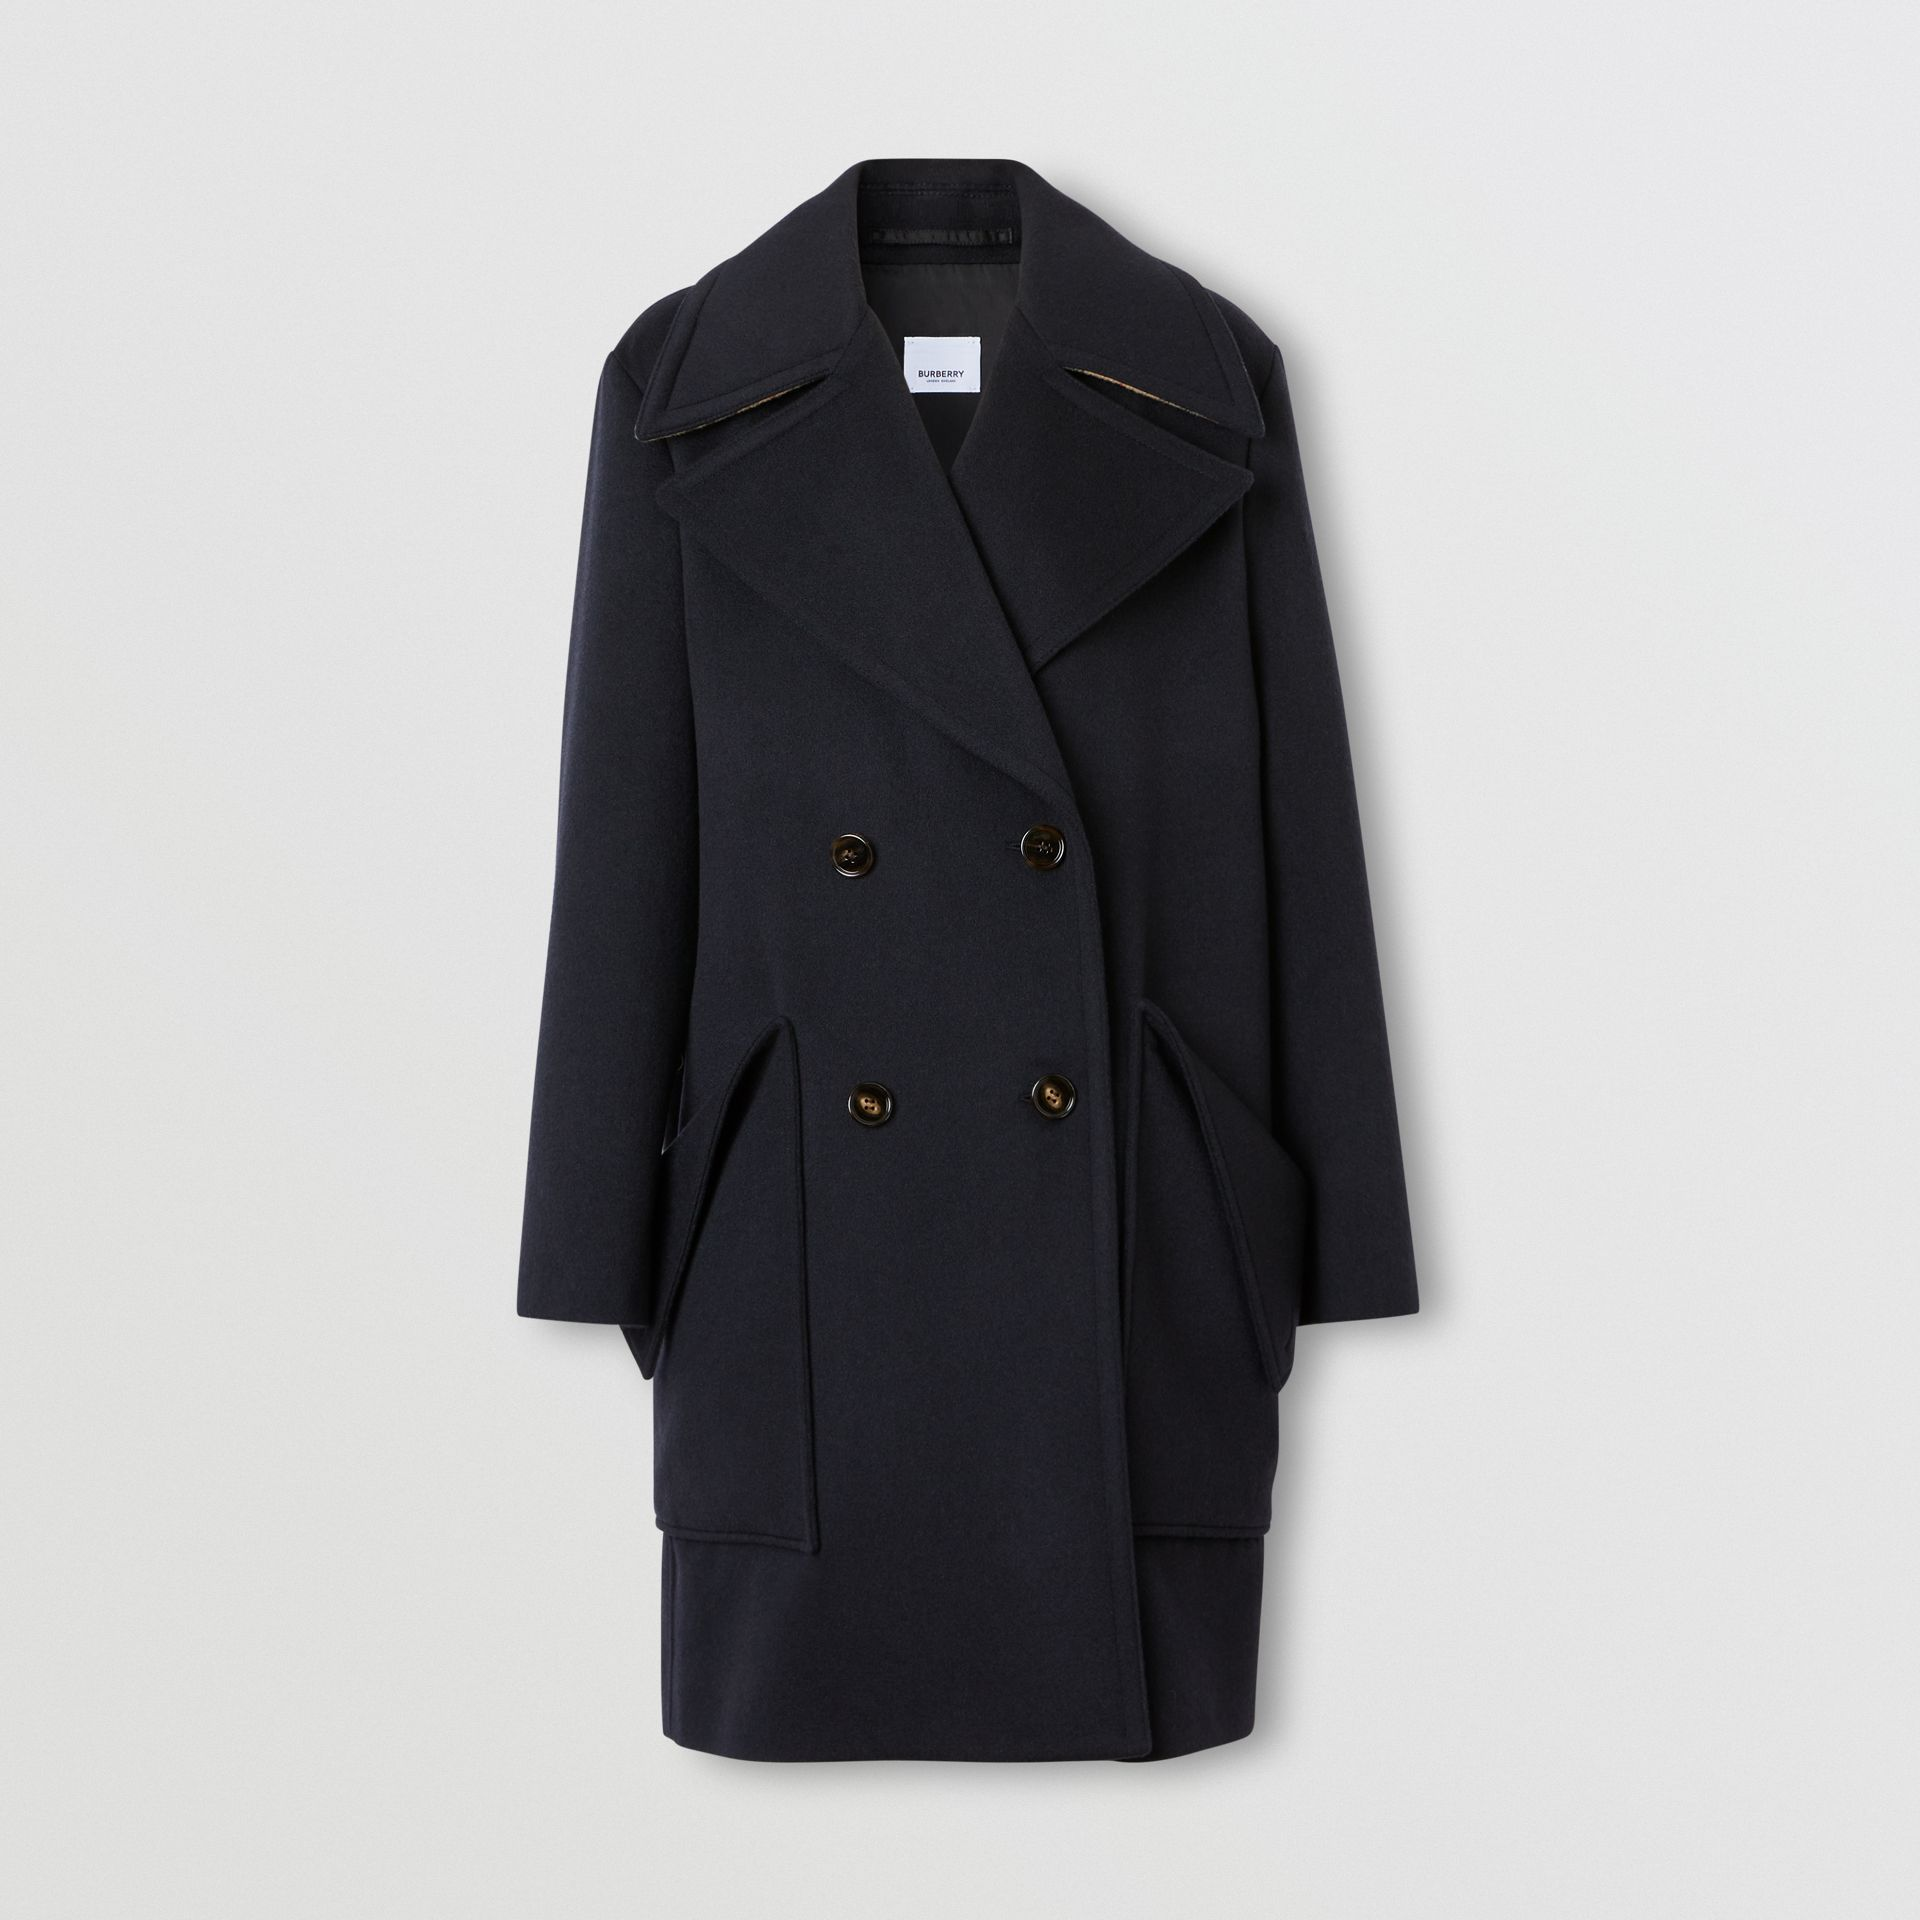 Pocket Detail Cashmere Pea Coat in Navy - Women | Burberry - gallery image 3